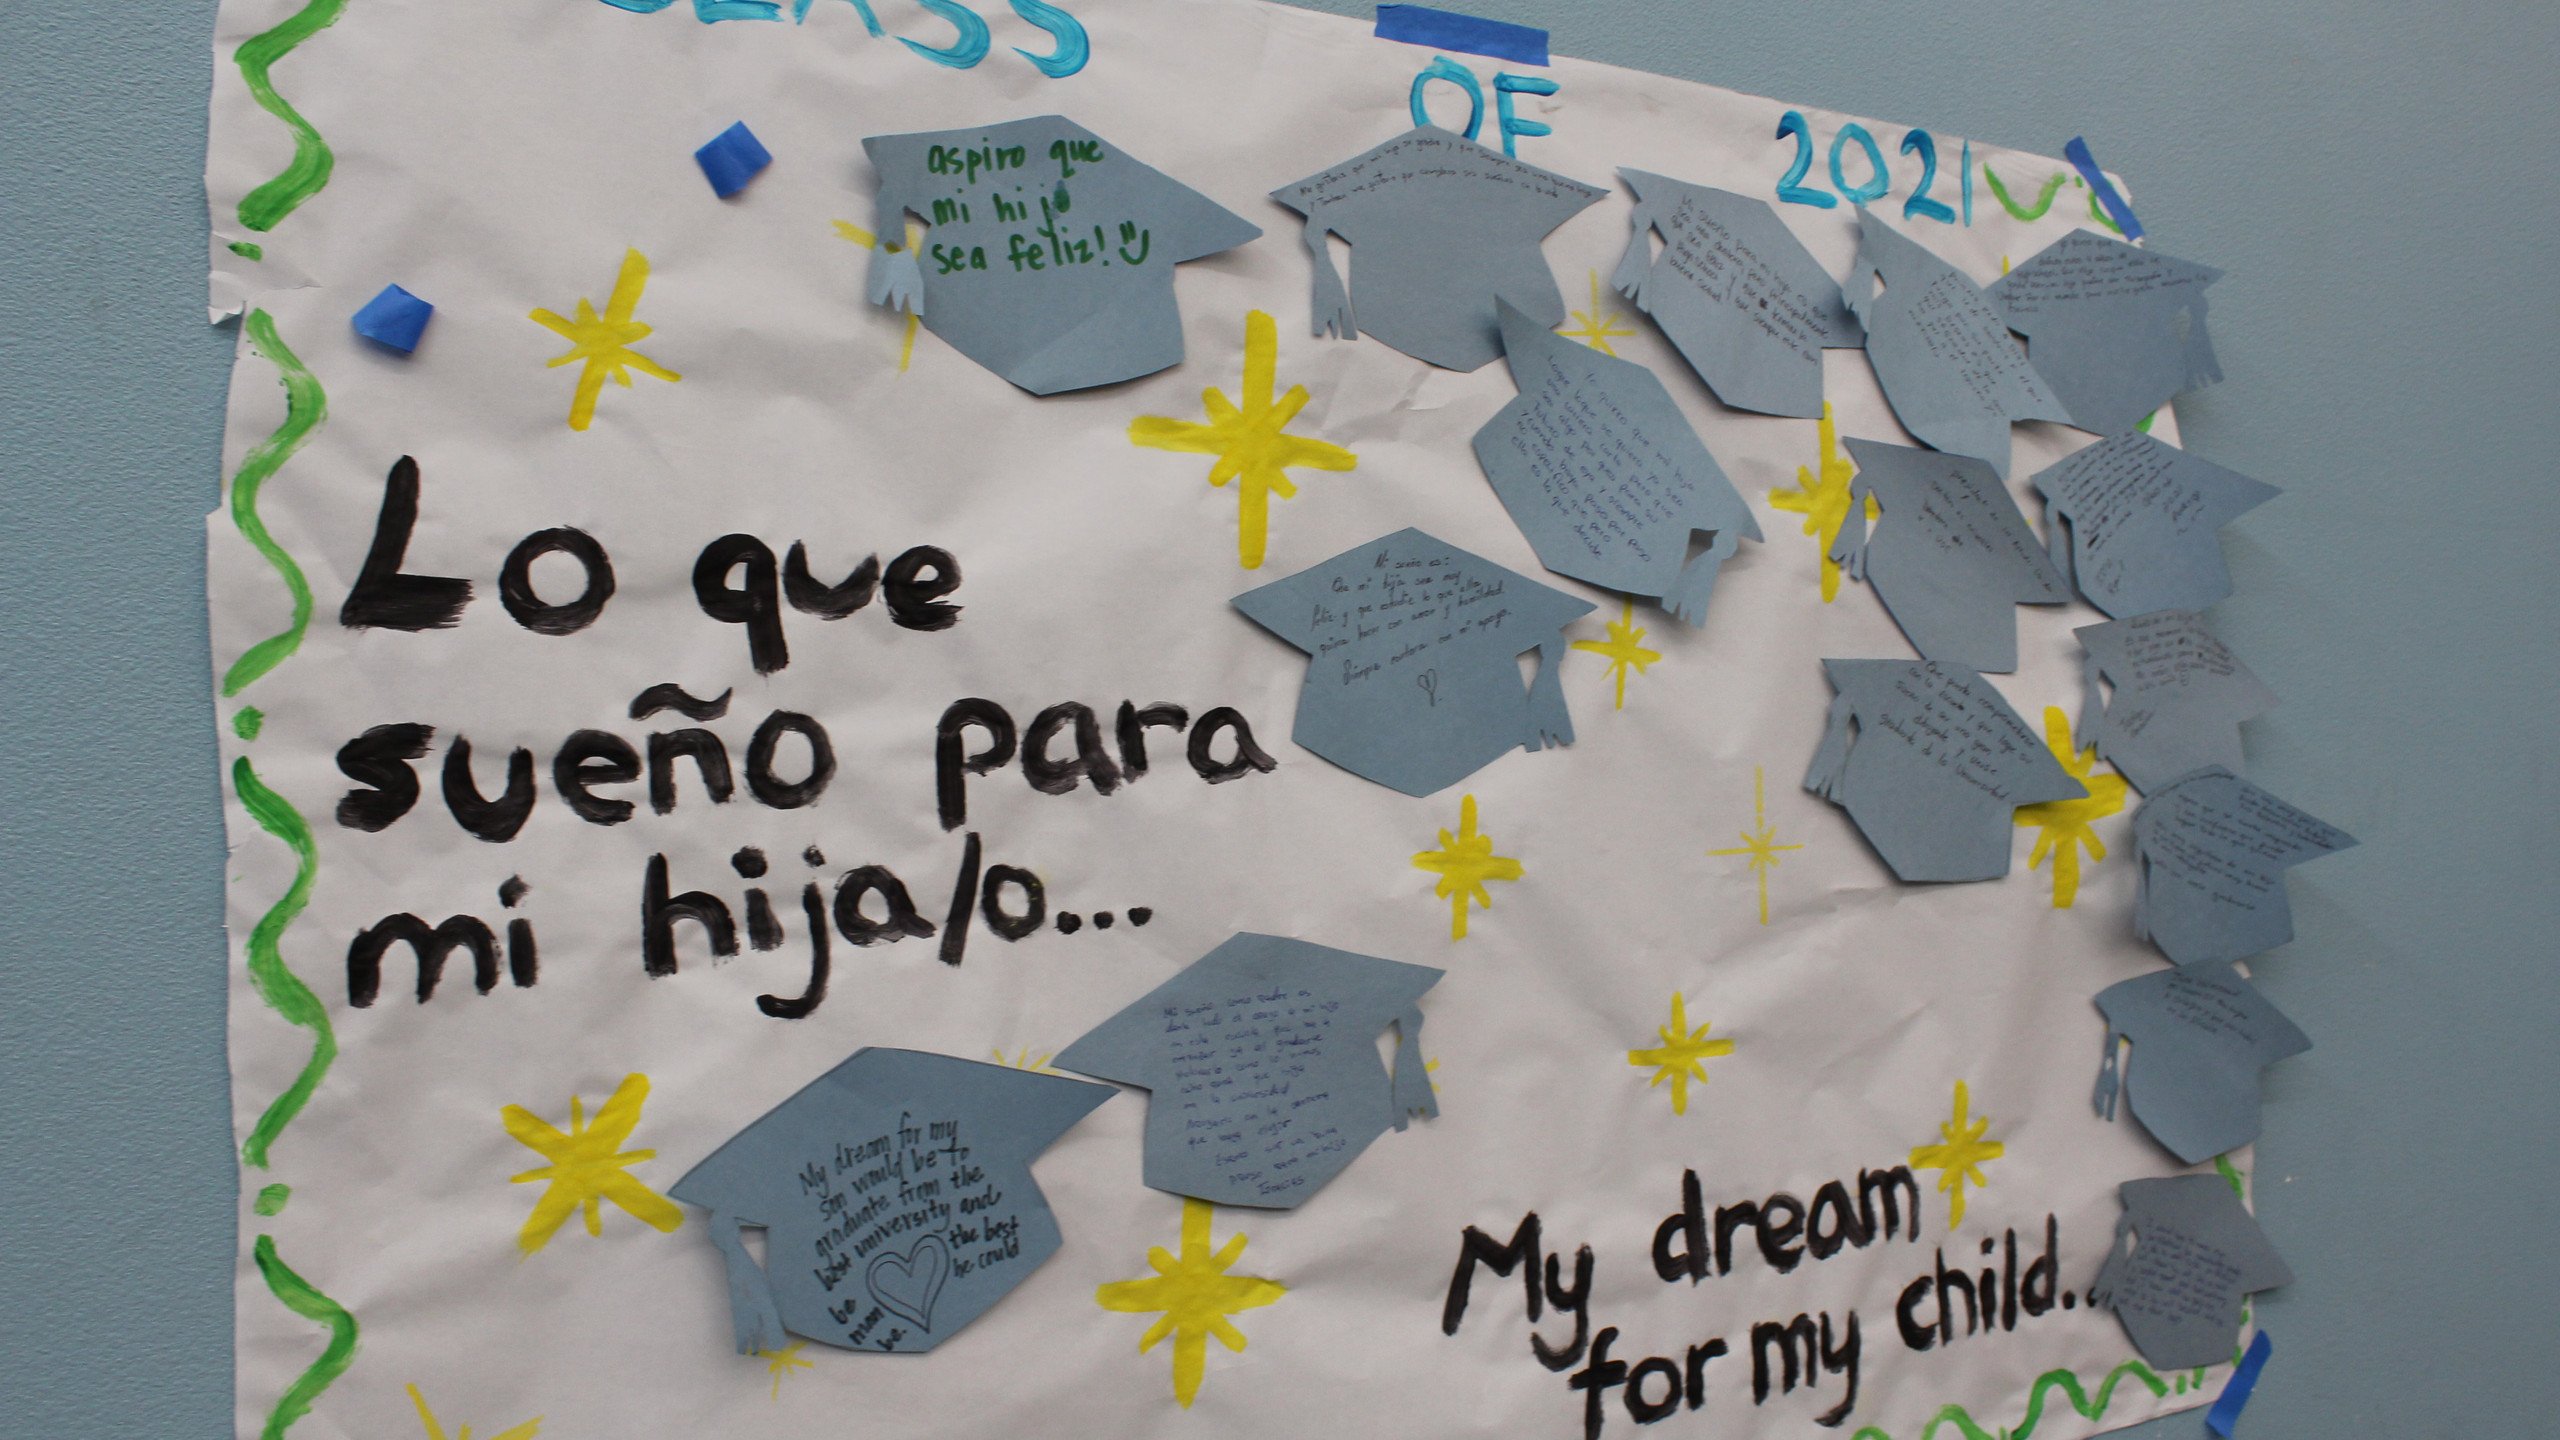 Parents share their hopes for their children.